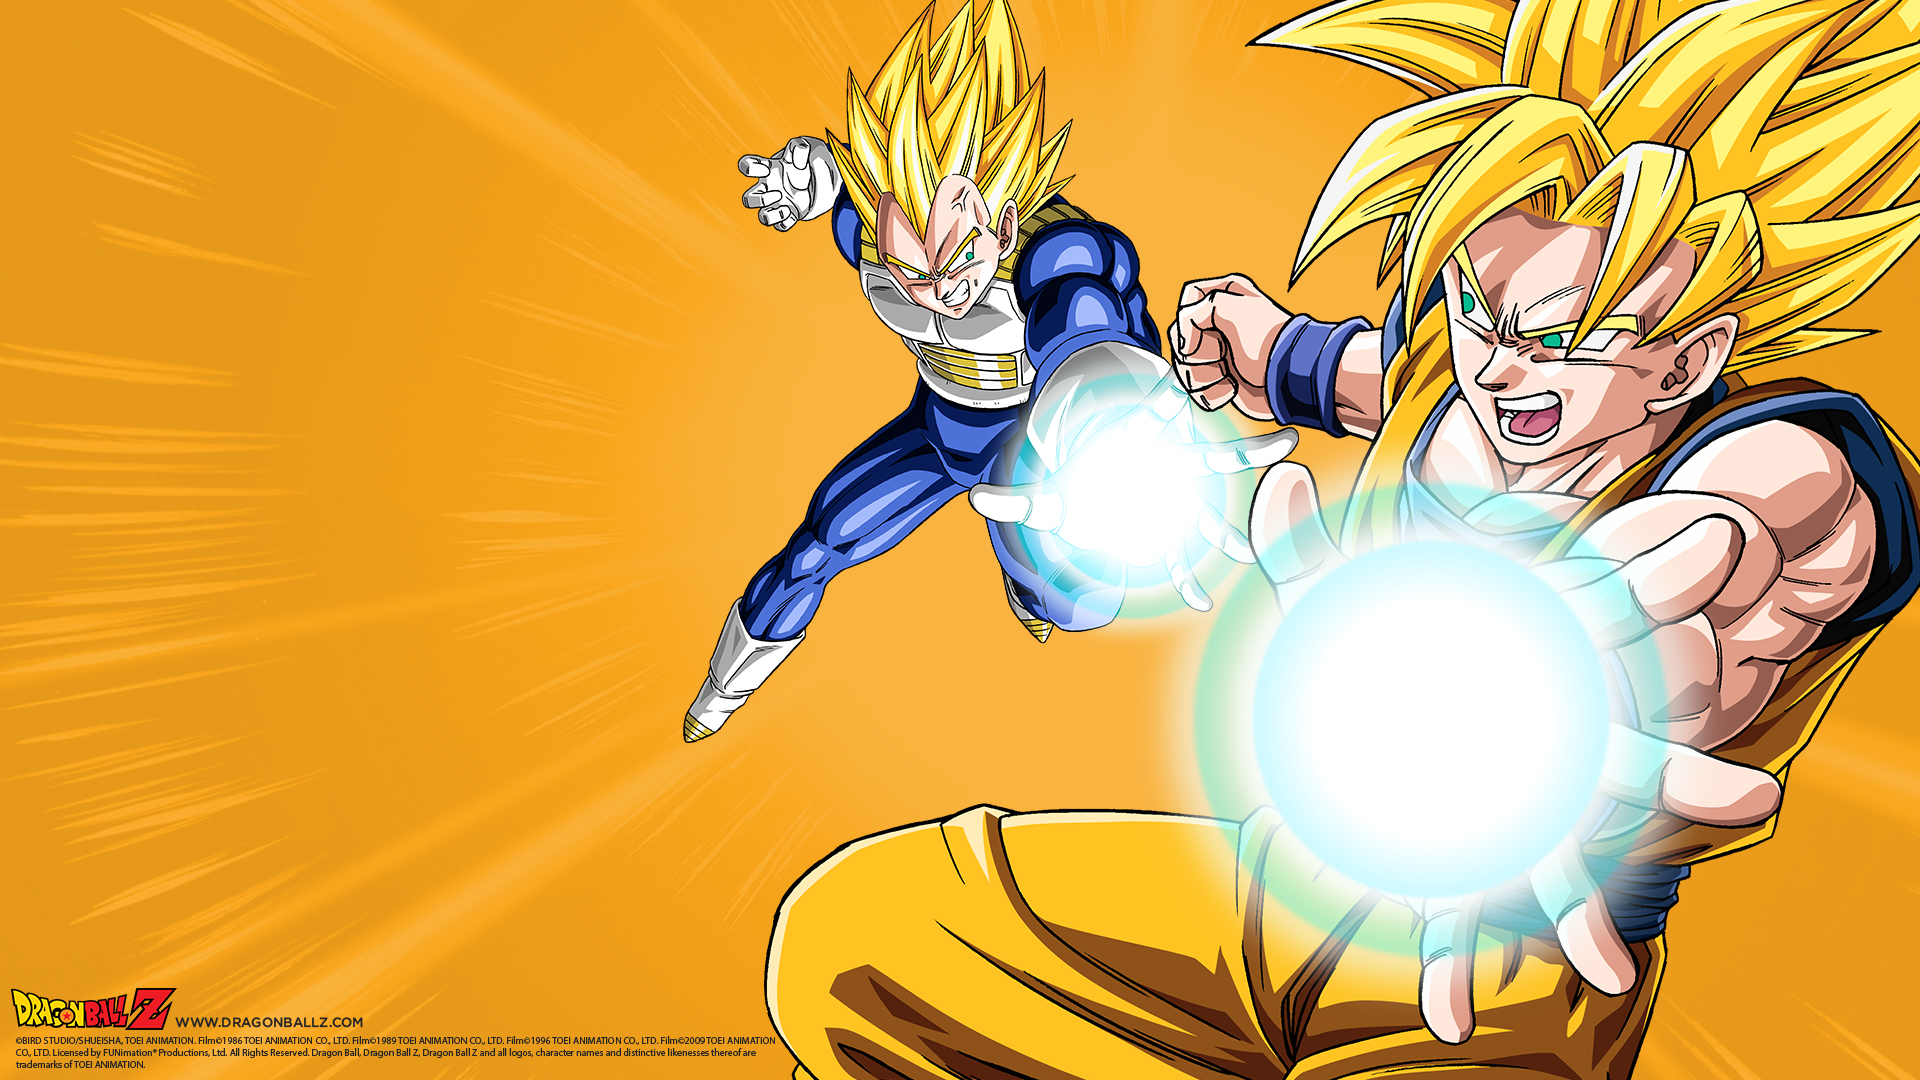 Dragon Ball Z Wallpapers HD 18